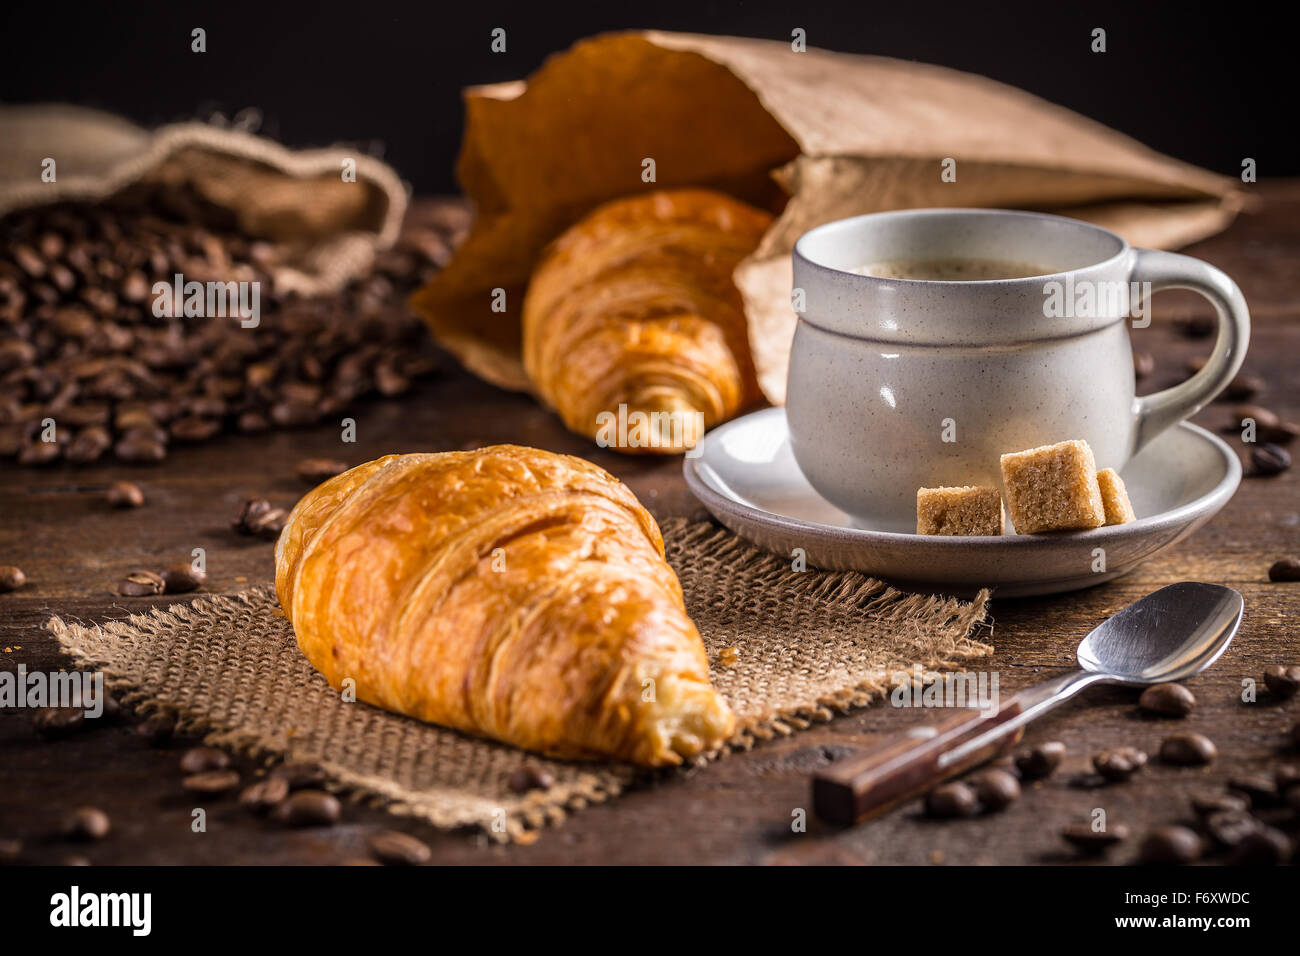 Breakfast concept: coffee and croissant - Stock Image